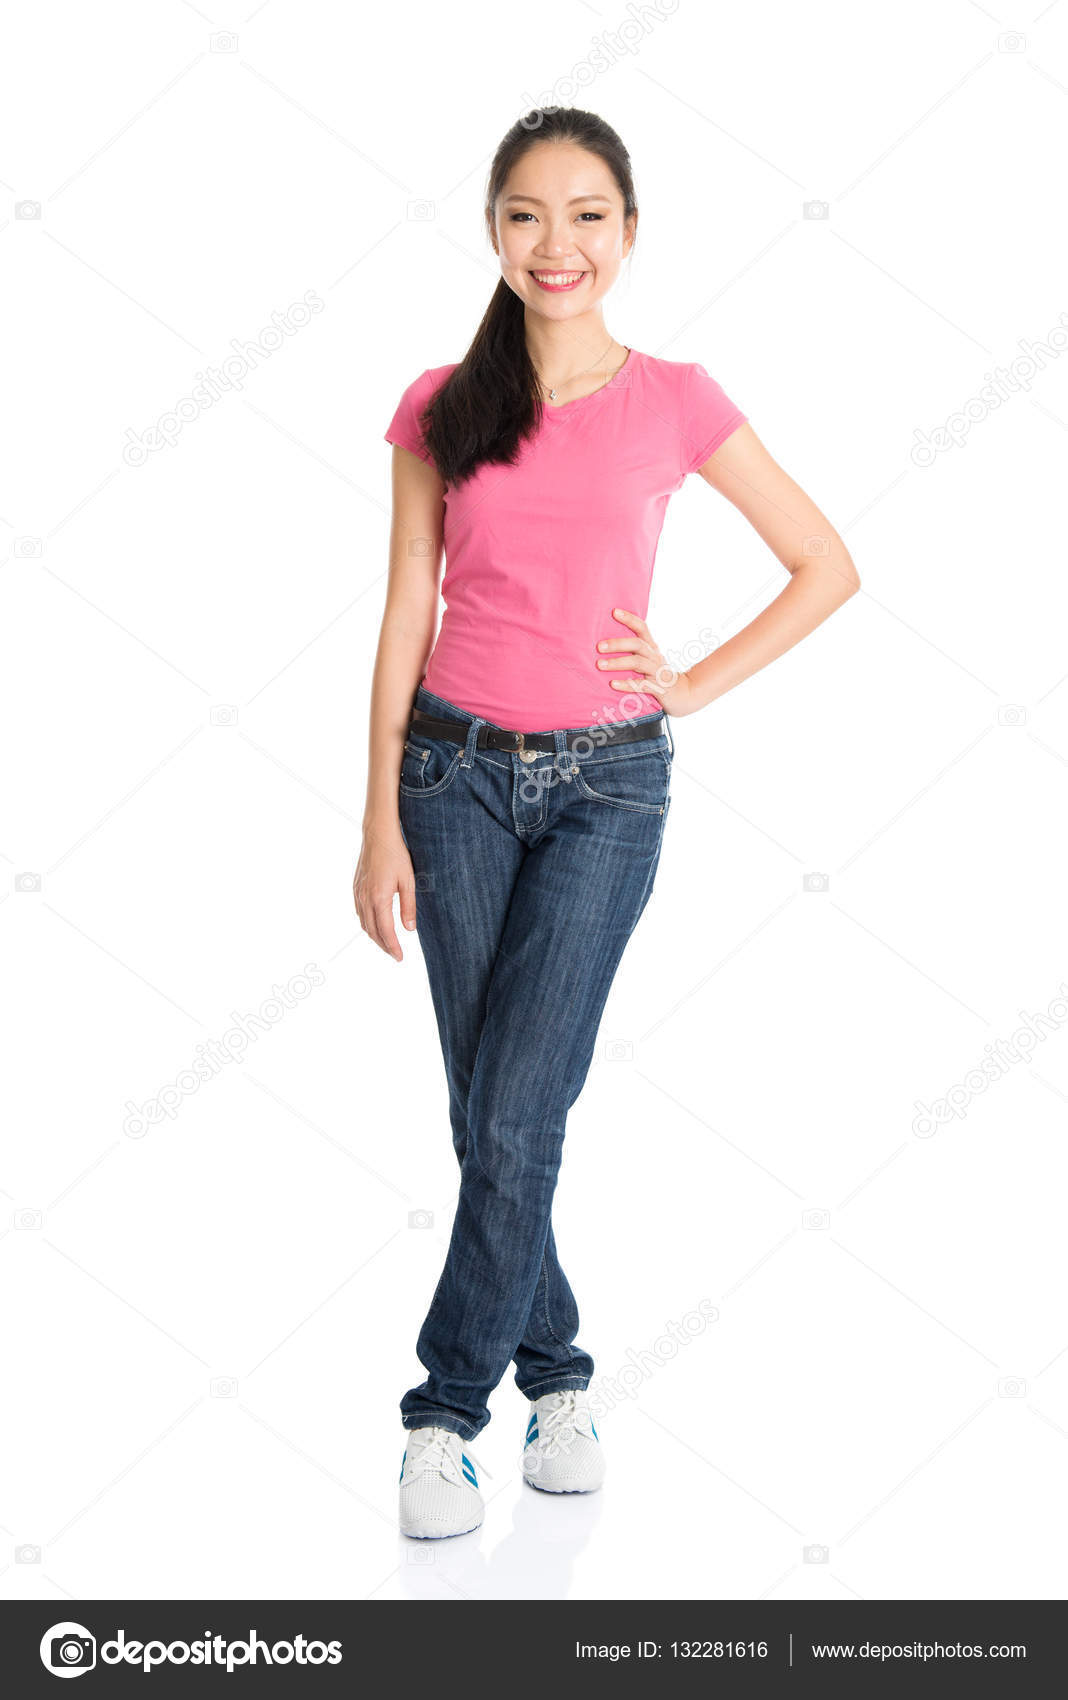 00856d7feed Portrait of young Asian woman in pink shirt and jeans with ponytail hair is  smiling